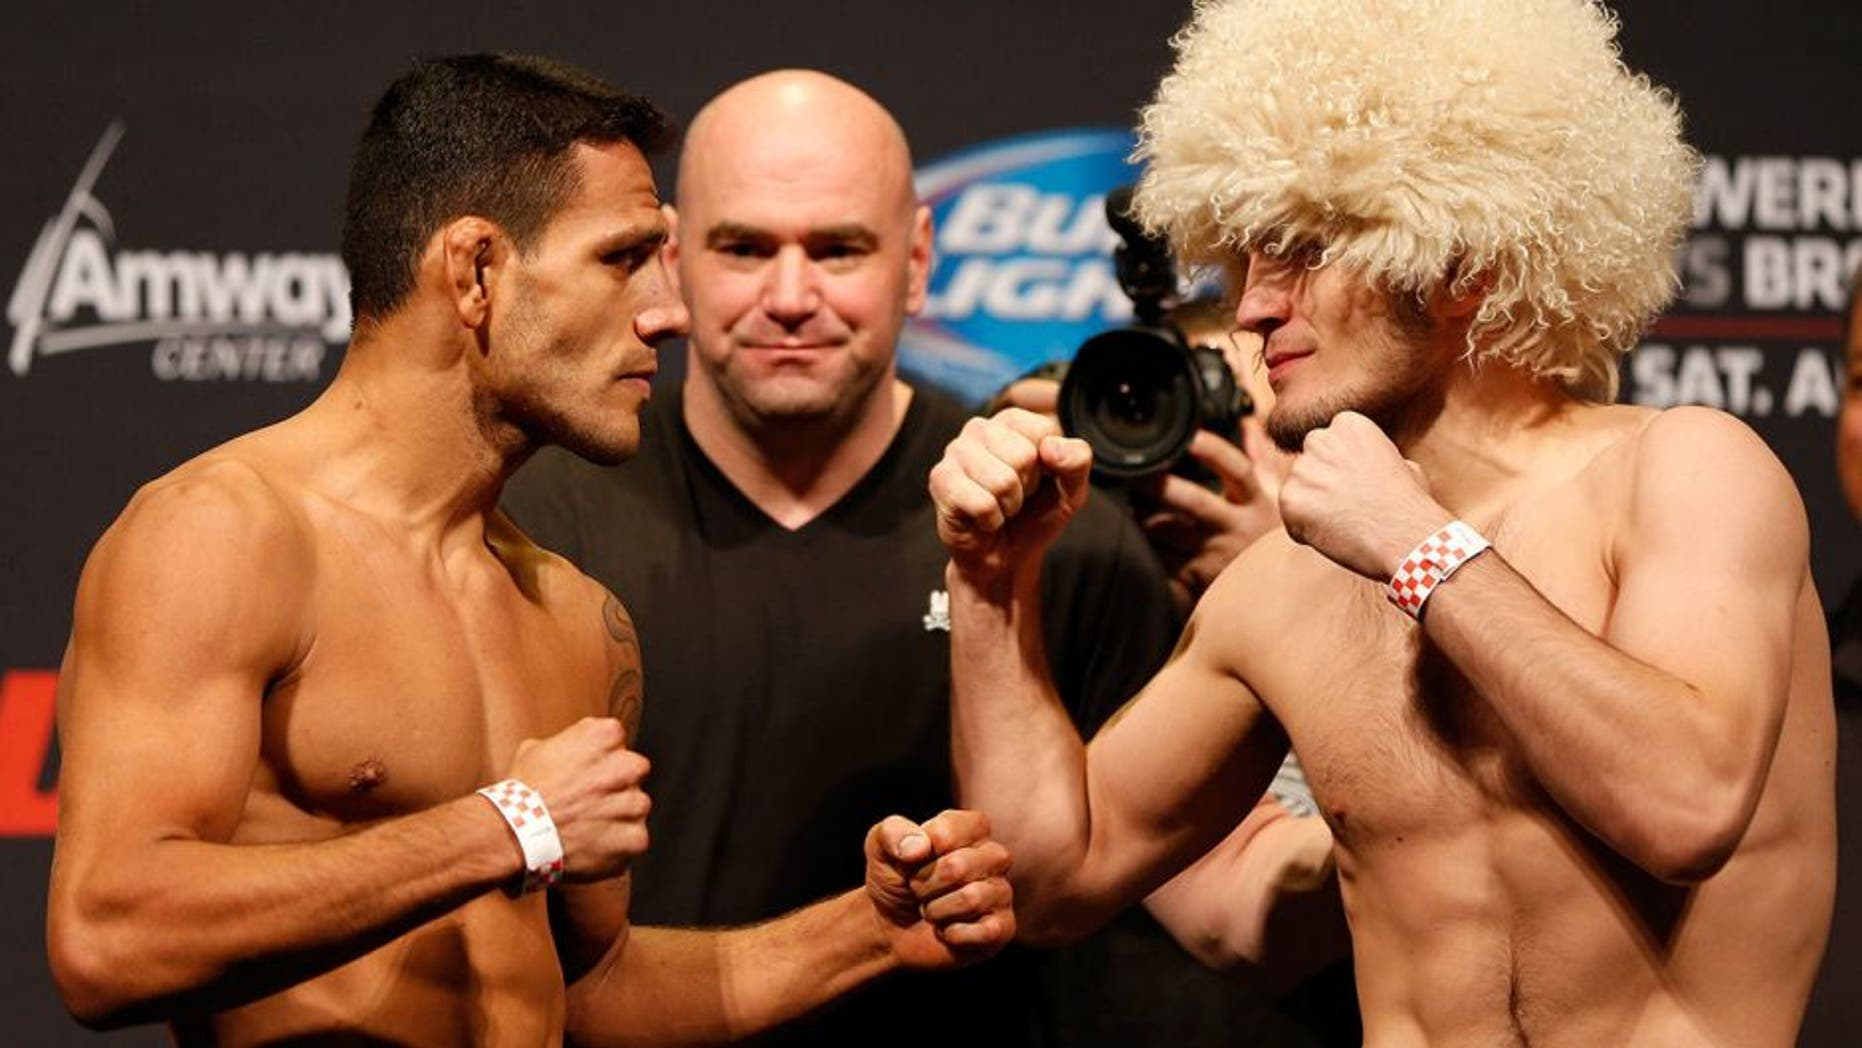 ORLANDO, FL - APRIL 18: (L-R) Opponents Rafael dos Anjos and Khabib Nurmagomedov face off during the FOX UFC Saturday weigh-in at the Amway Center on April 18, 2014 in Orlando, Florida. (Photo by Josh Hedges/Zuffa LLC/Zuffa LLC via Getty Images)